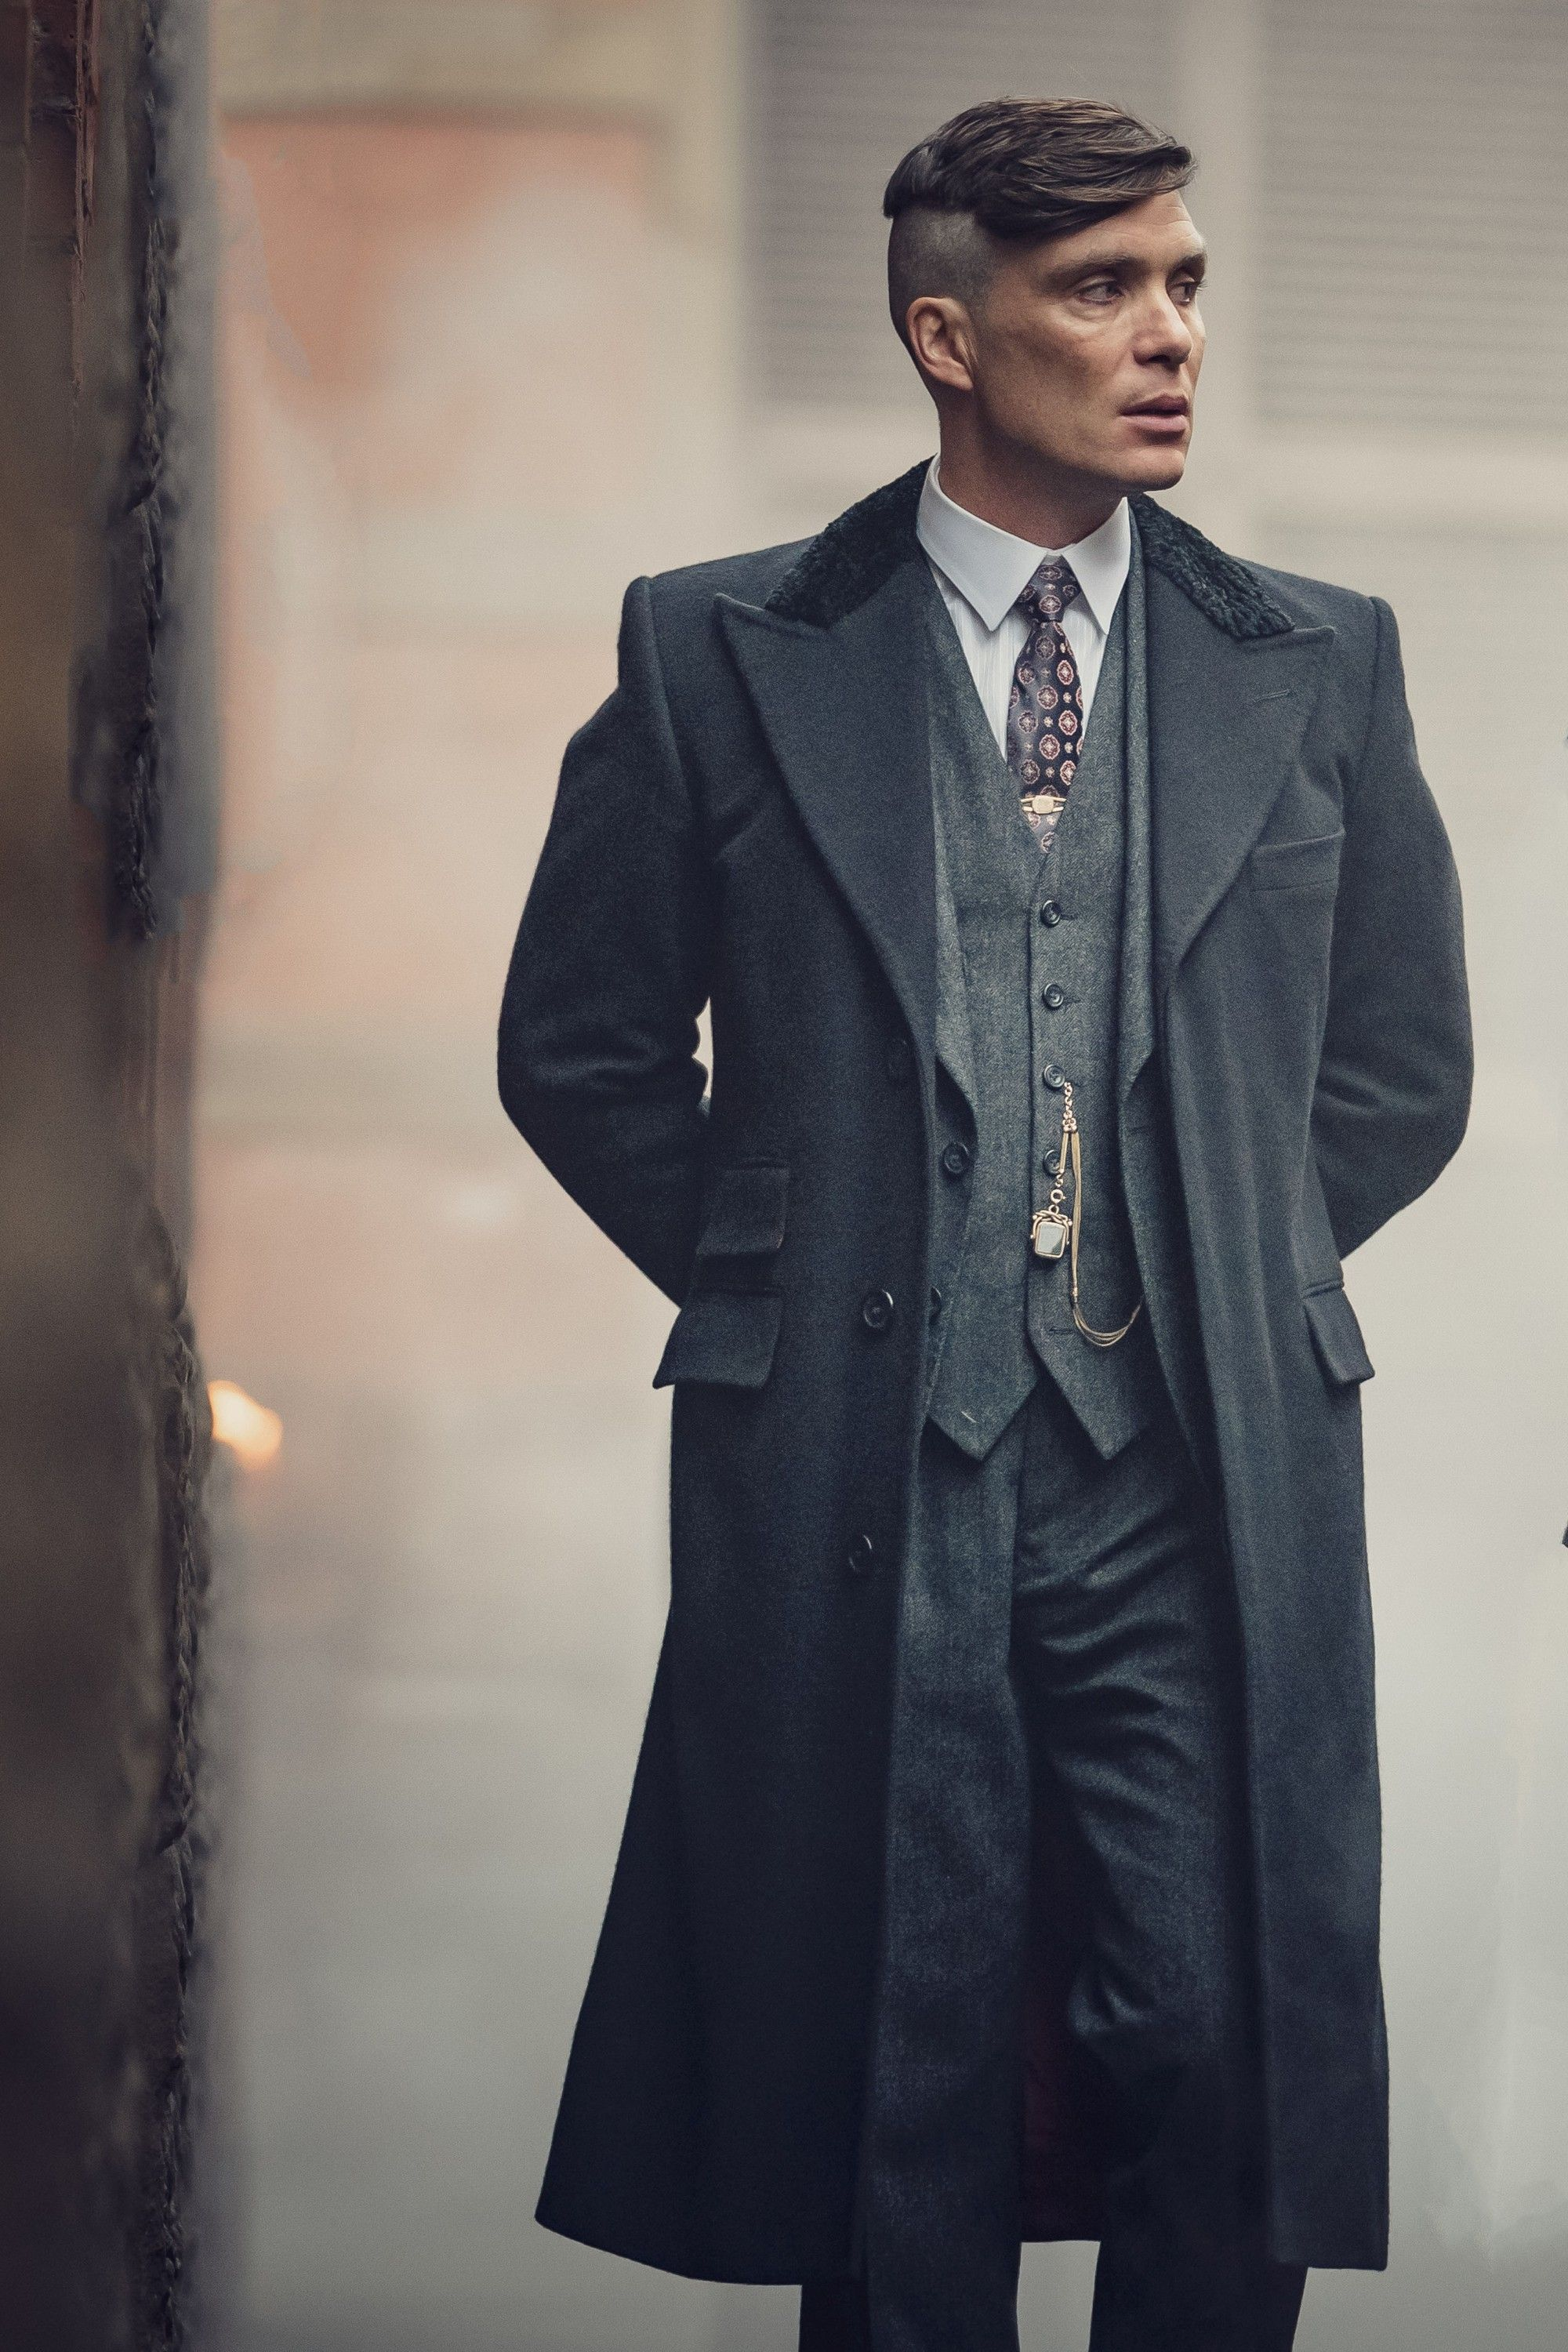 Peaky Blinders season 6 confirms episode 1 title as show enters pre-production